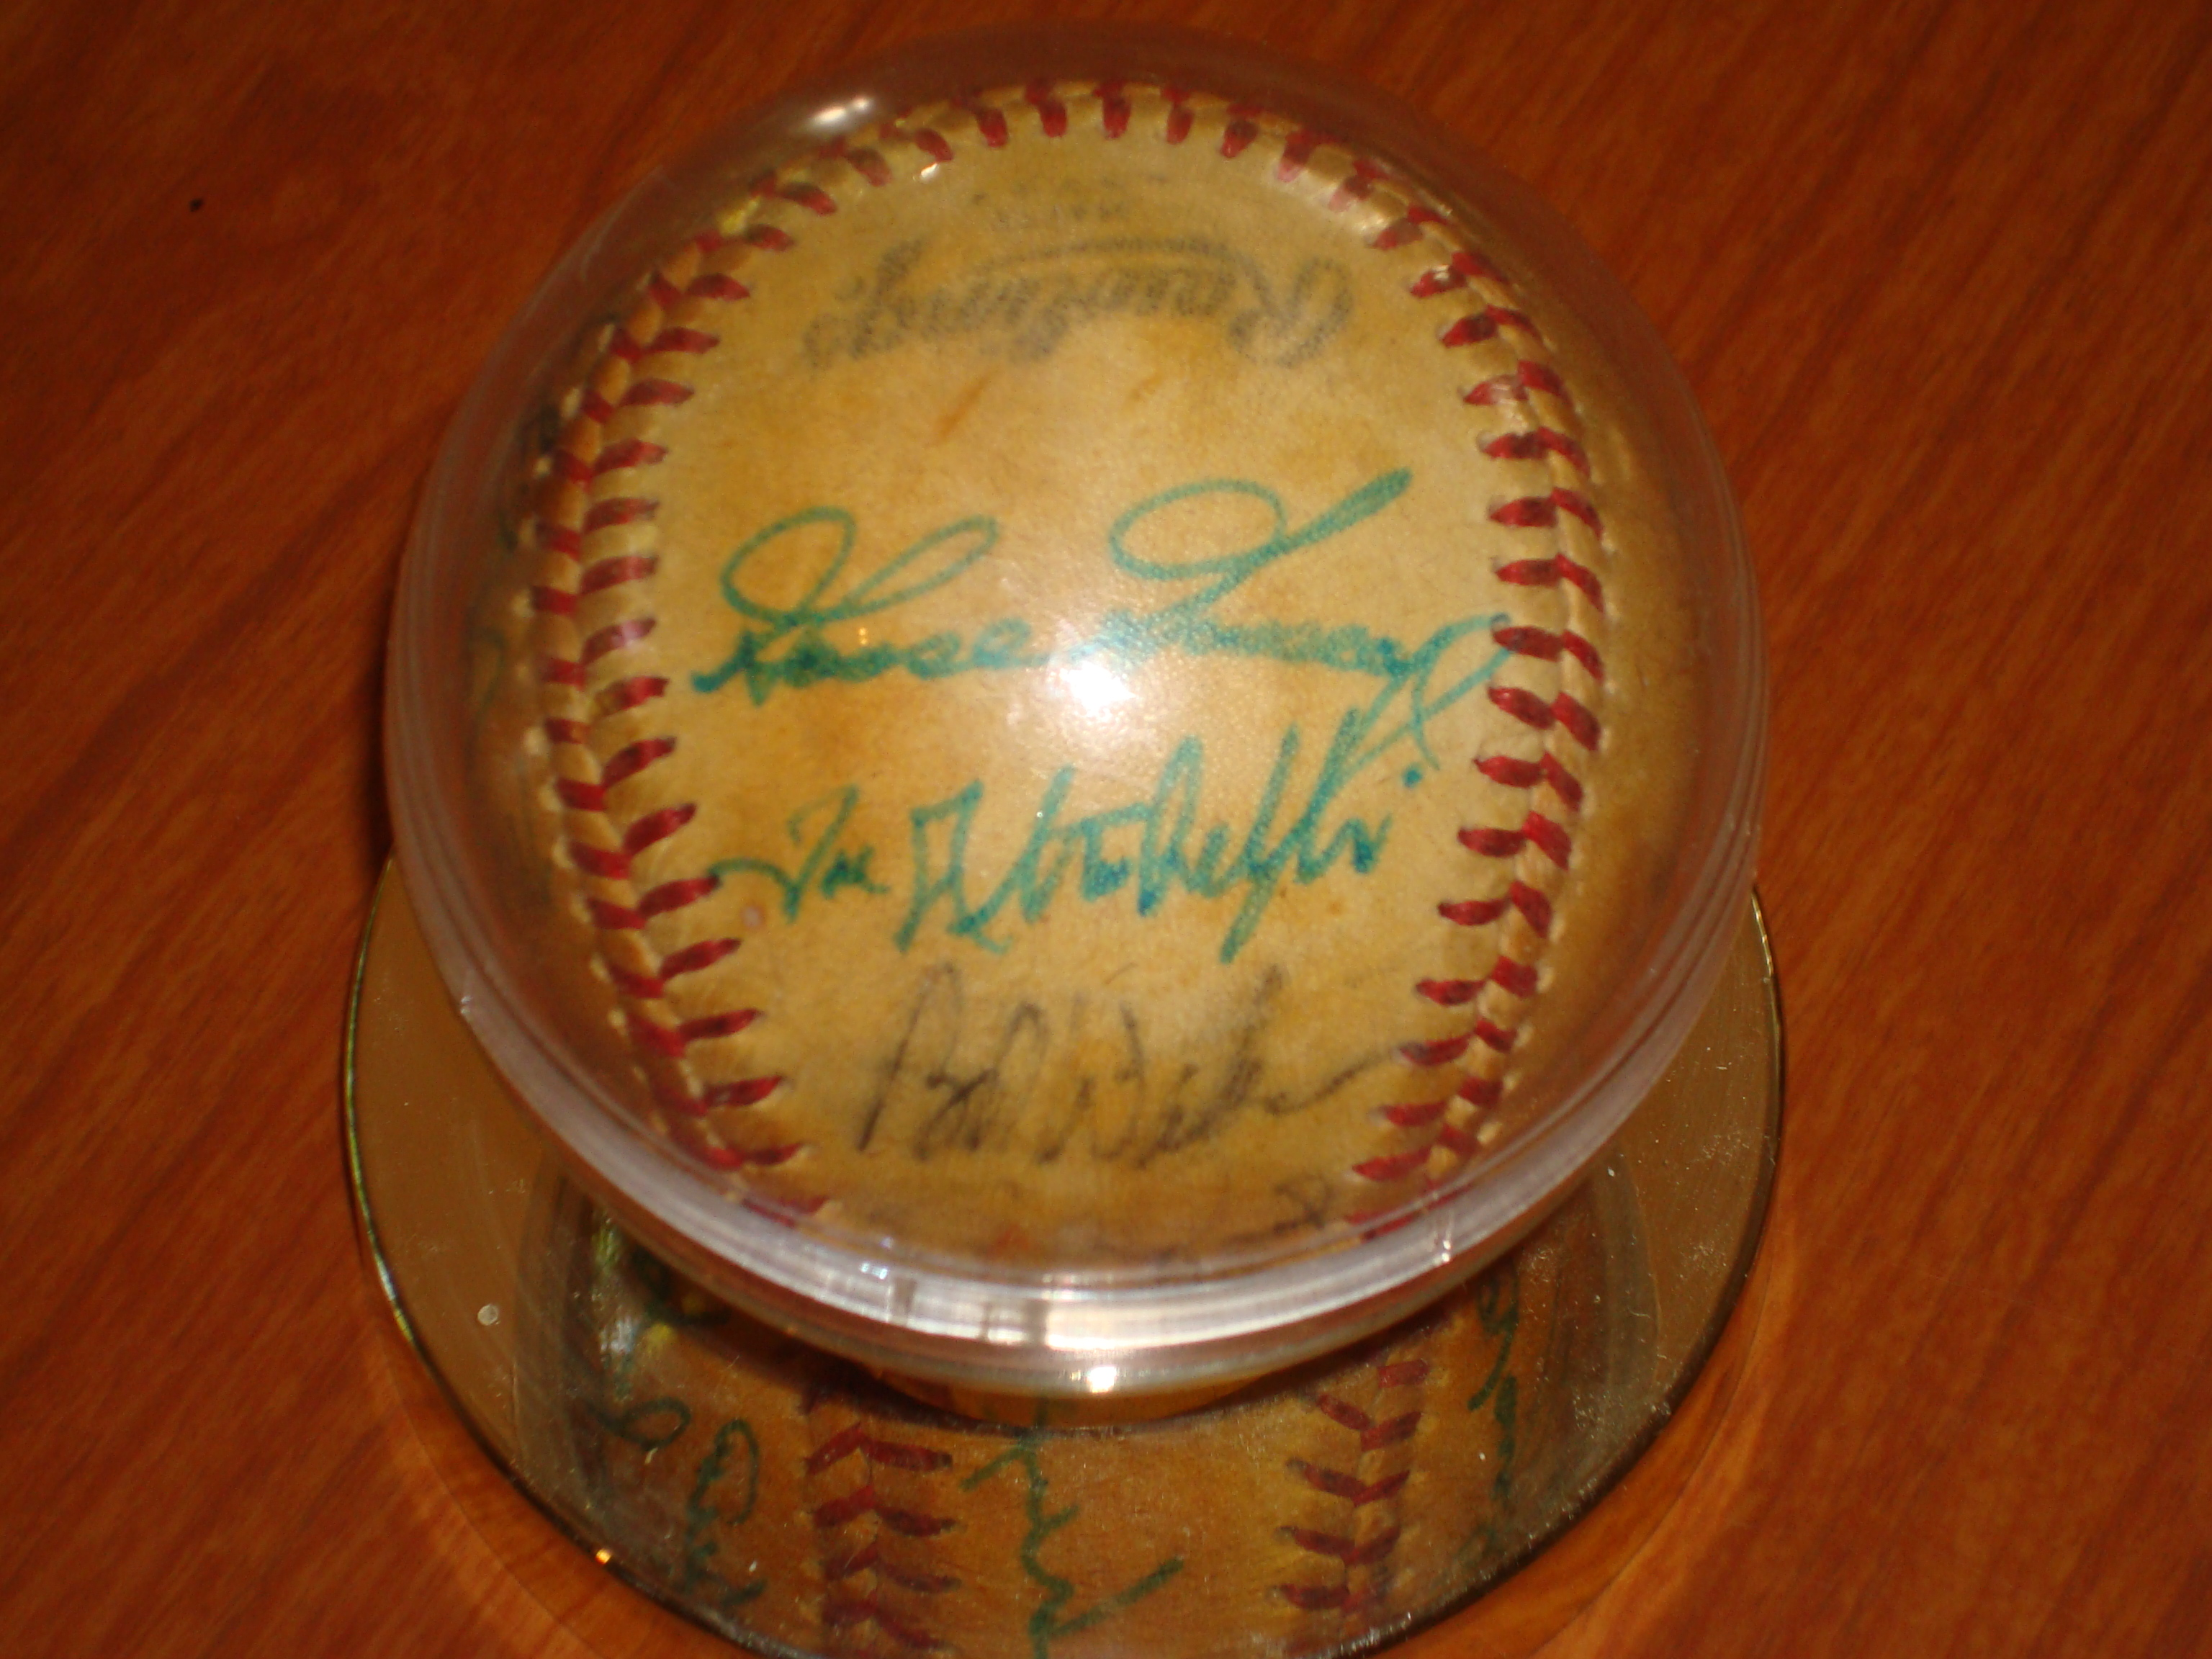 1978 Autographed New York Yankees Team Ball - Goose Gossage,